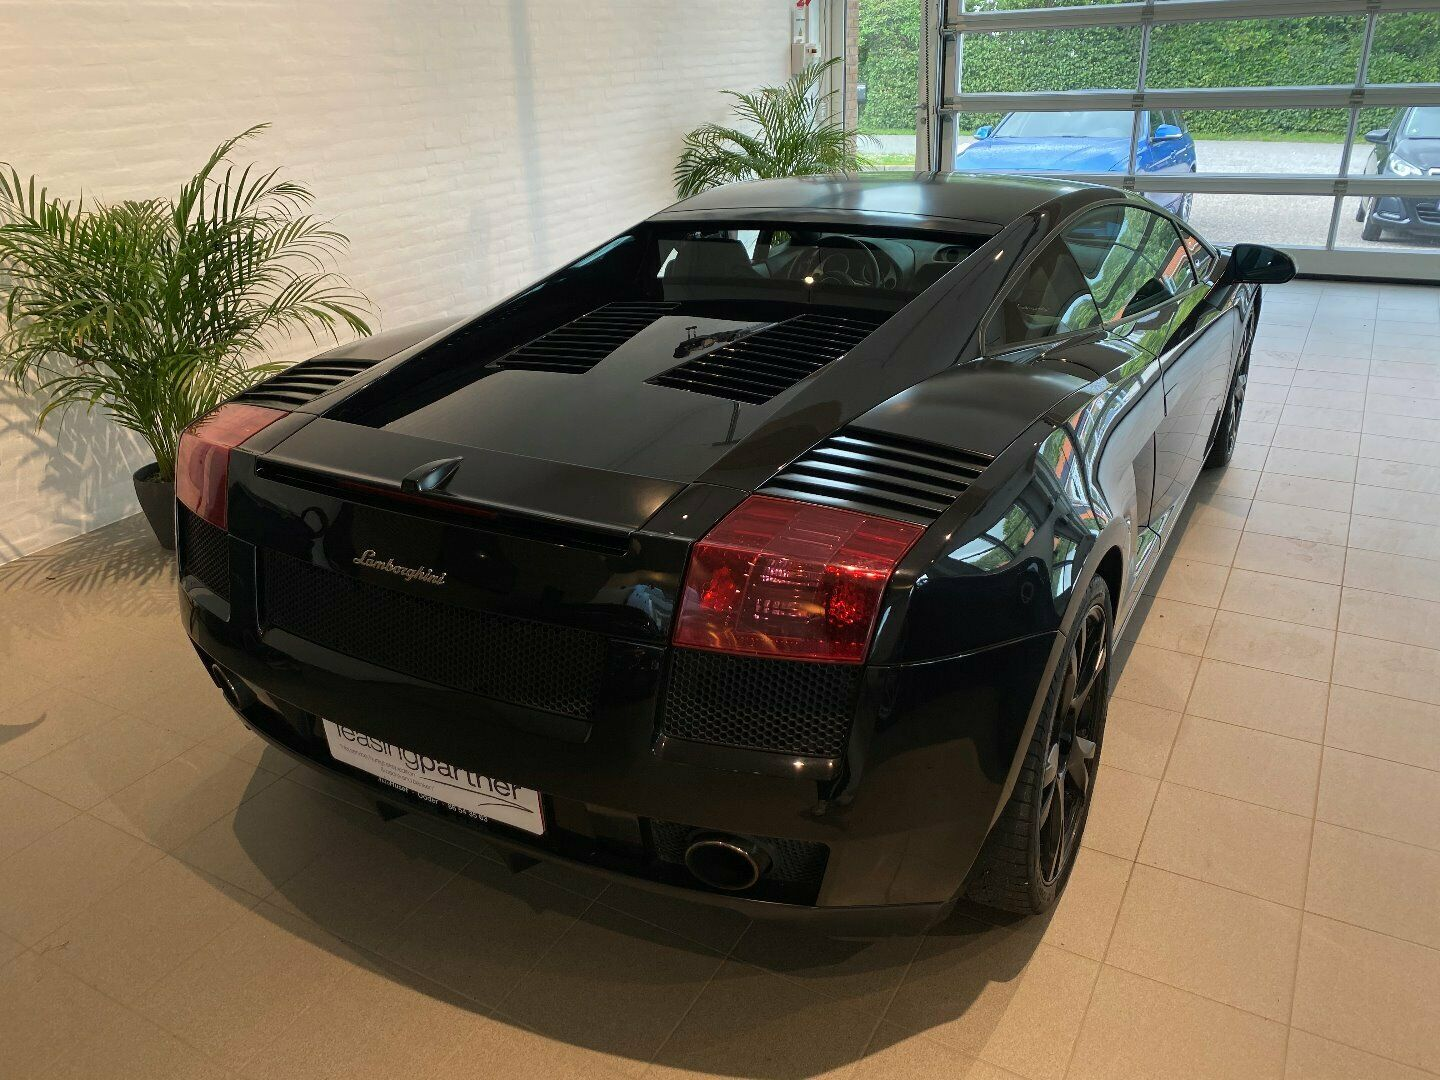 Lamborghini Gallardo 5,0 E-gear 2d, Sort